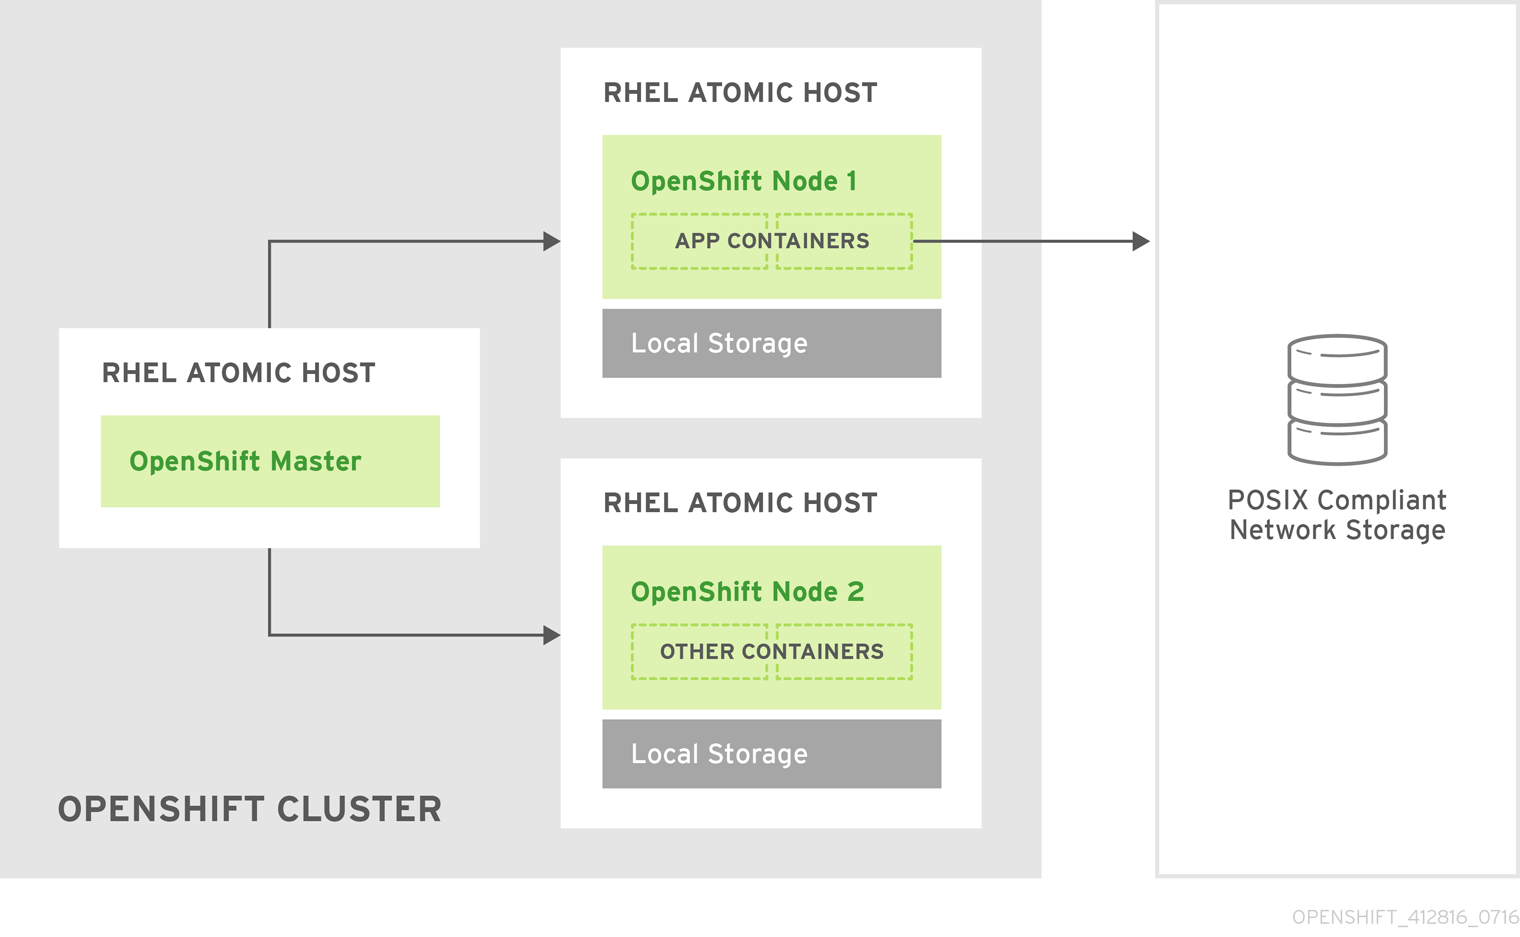 Architecture - Standalone Red Hat Gluster Storage Cluster Using OpenShift Container Platform's GlusterFS Volume Plug-in